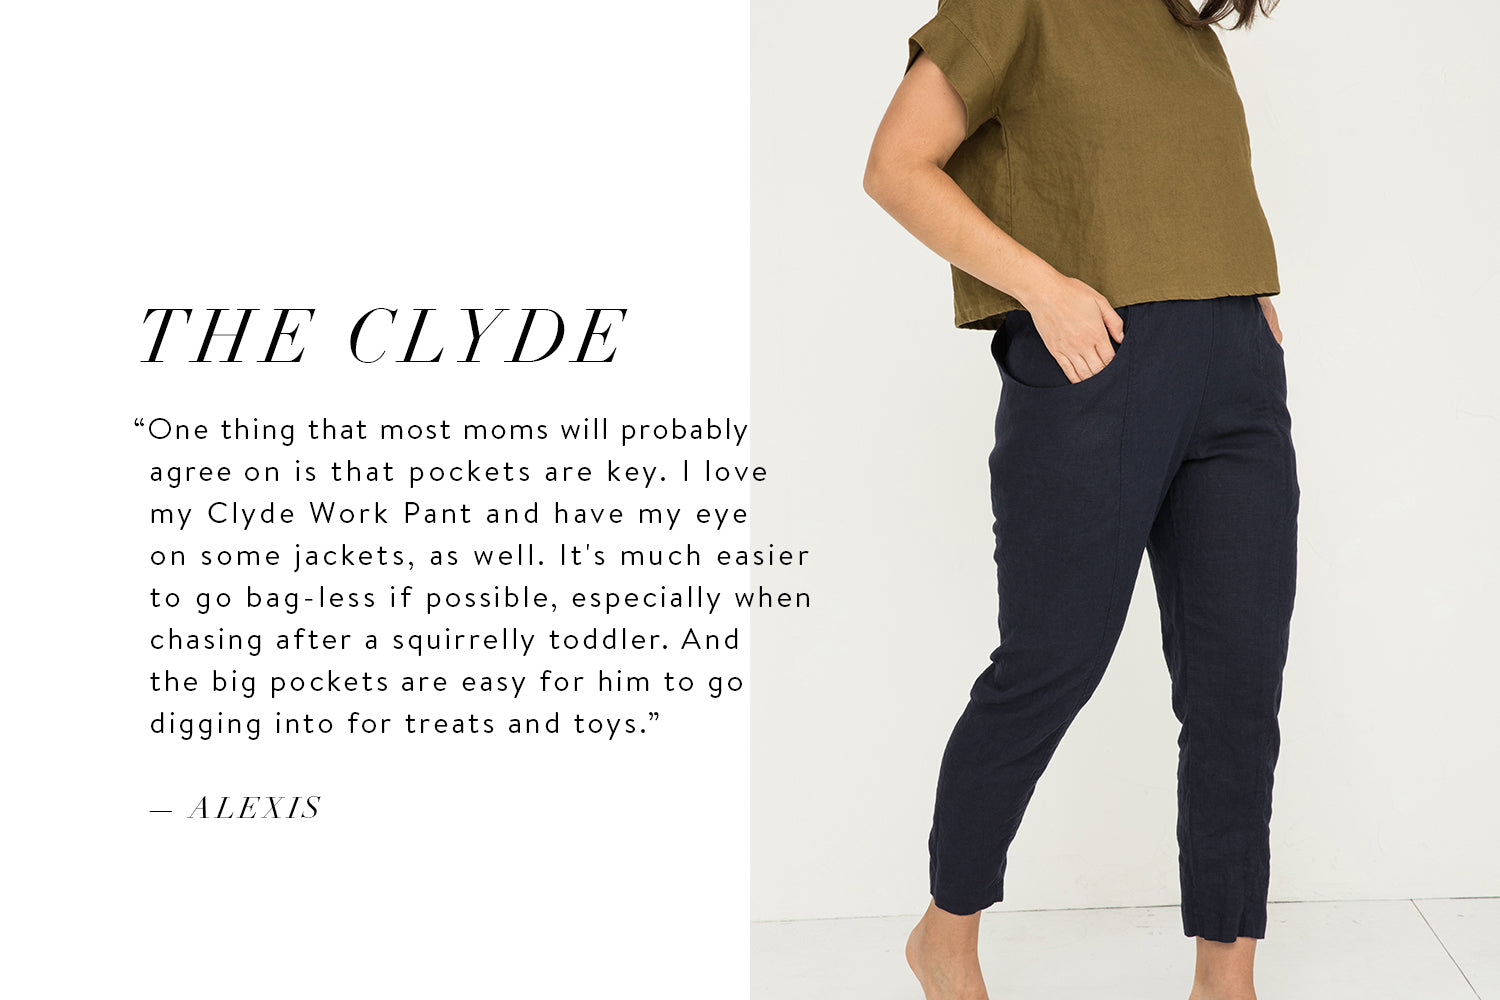 37cea1a788 Indestructible Clyde Work Pants are absolutely perfect for all the  preschooler adventures! They are my essential mom pants! — BMB